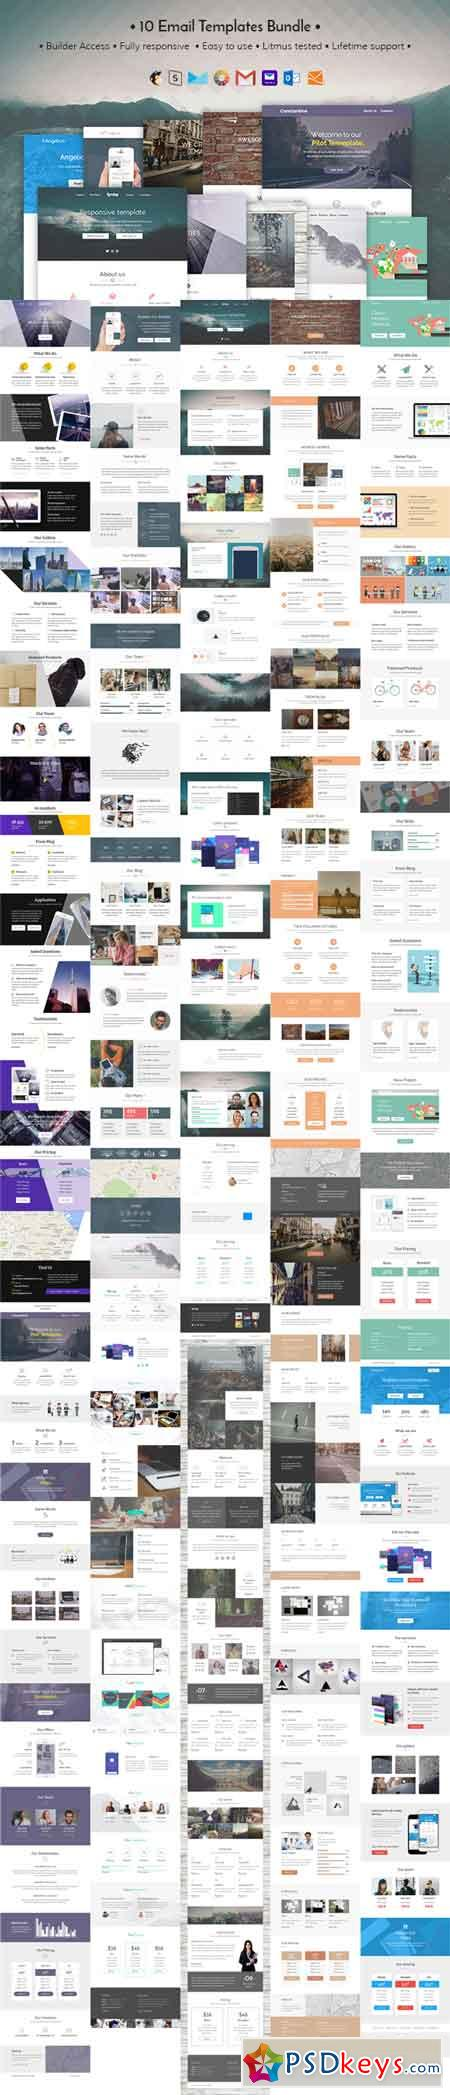 10 Email templates bundle + Builder 655238 » Free Download Photoshop ...